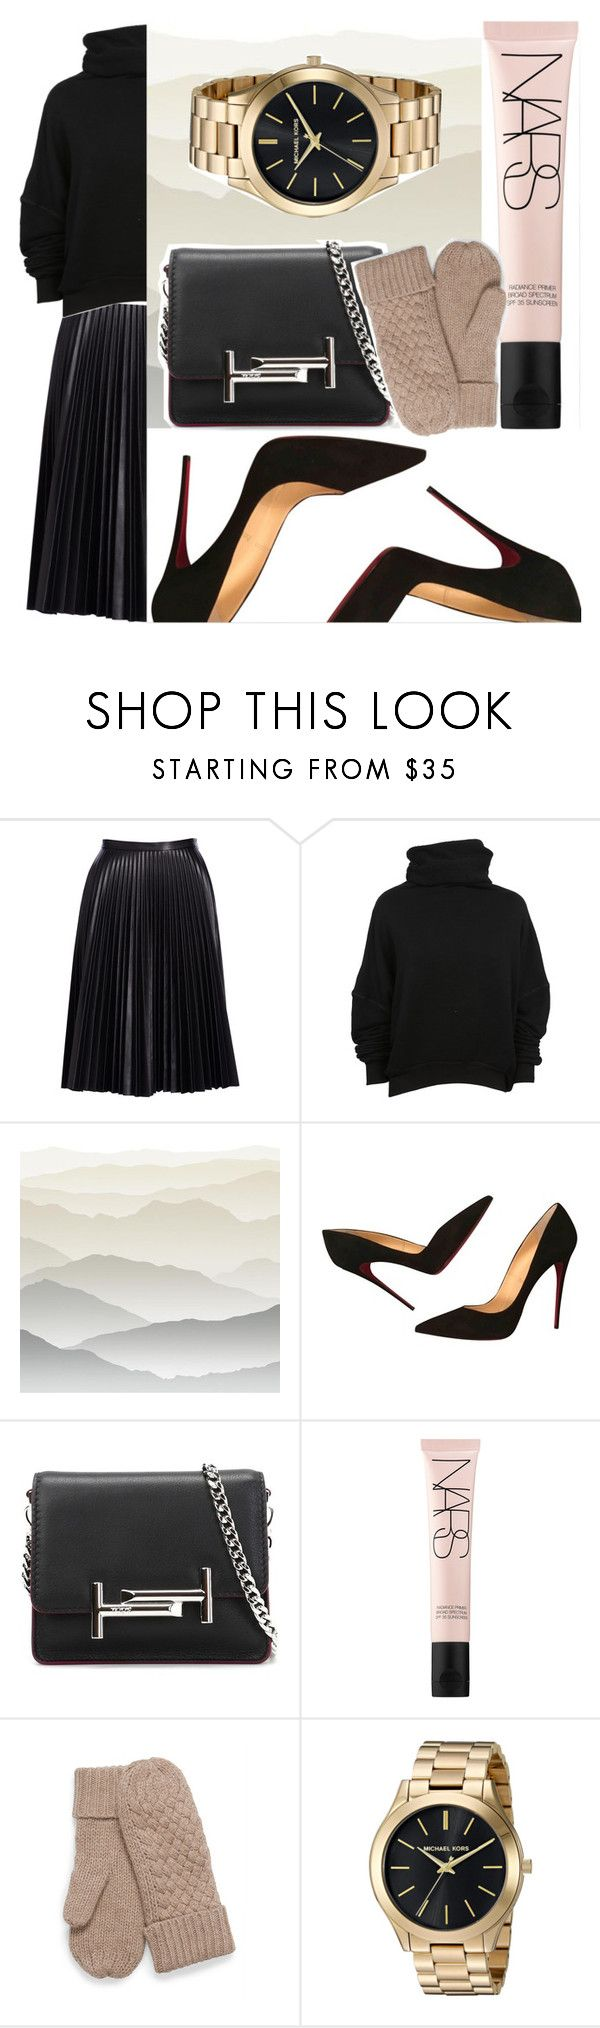 """""""Easy"""" by picale ❤ liked on Polyvore featuring Cusp by Neiman Marcus, Unravel, York Wallcoverings, Christian Louboutin, Tod's and NARS Cosmetics"""